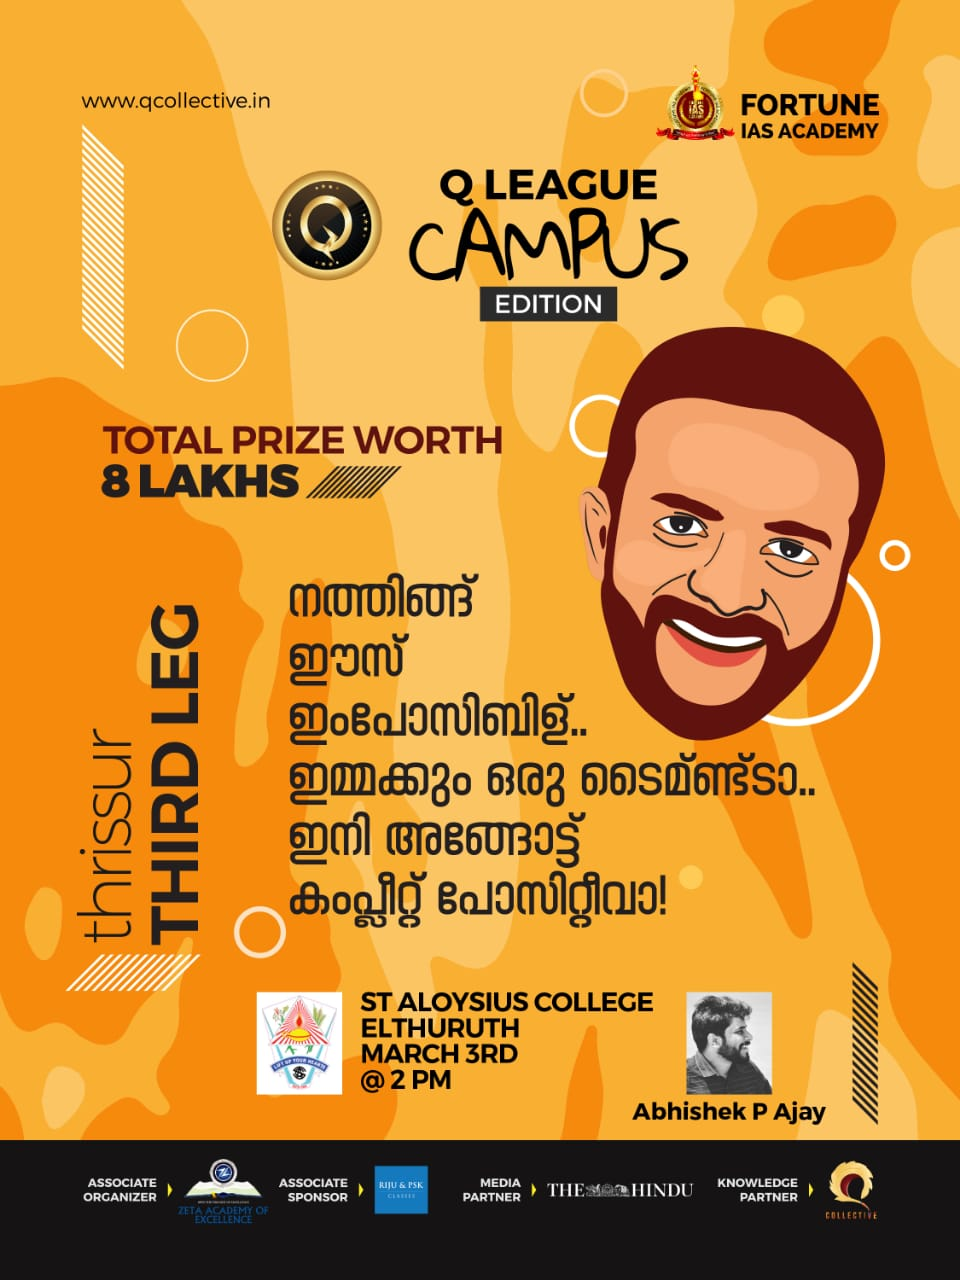 Q League Campus Edition Thrissur Third Leg